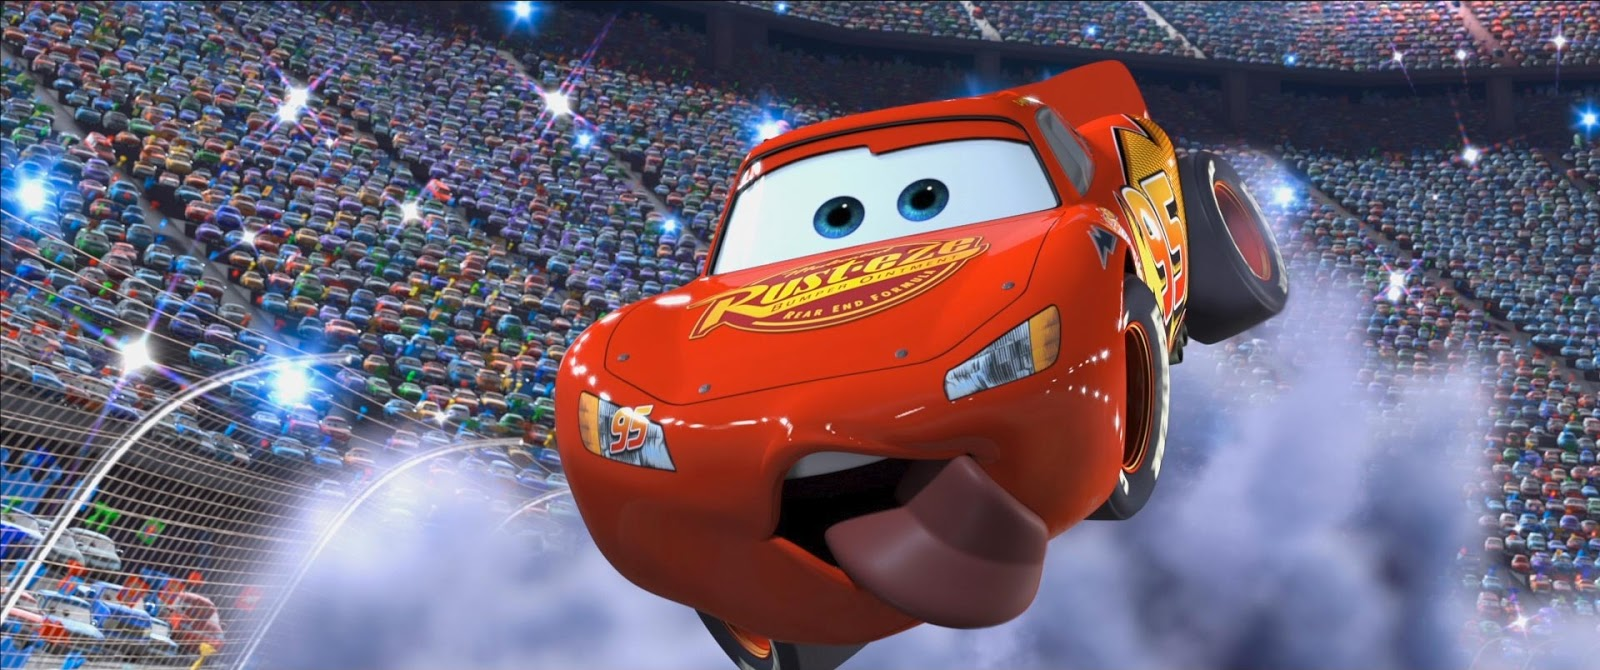 cars 1 2006 dvdrip  subtitle indonesia  the movies